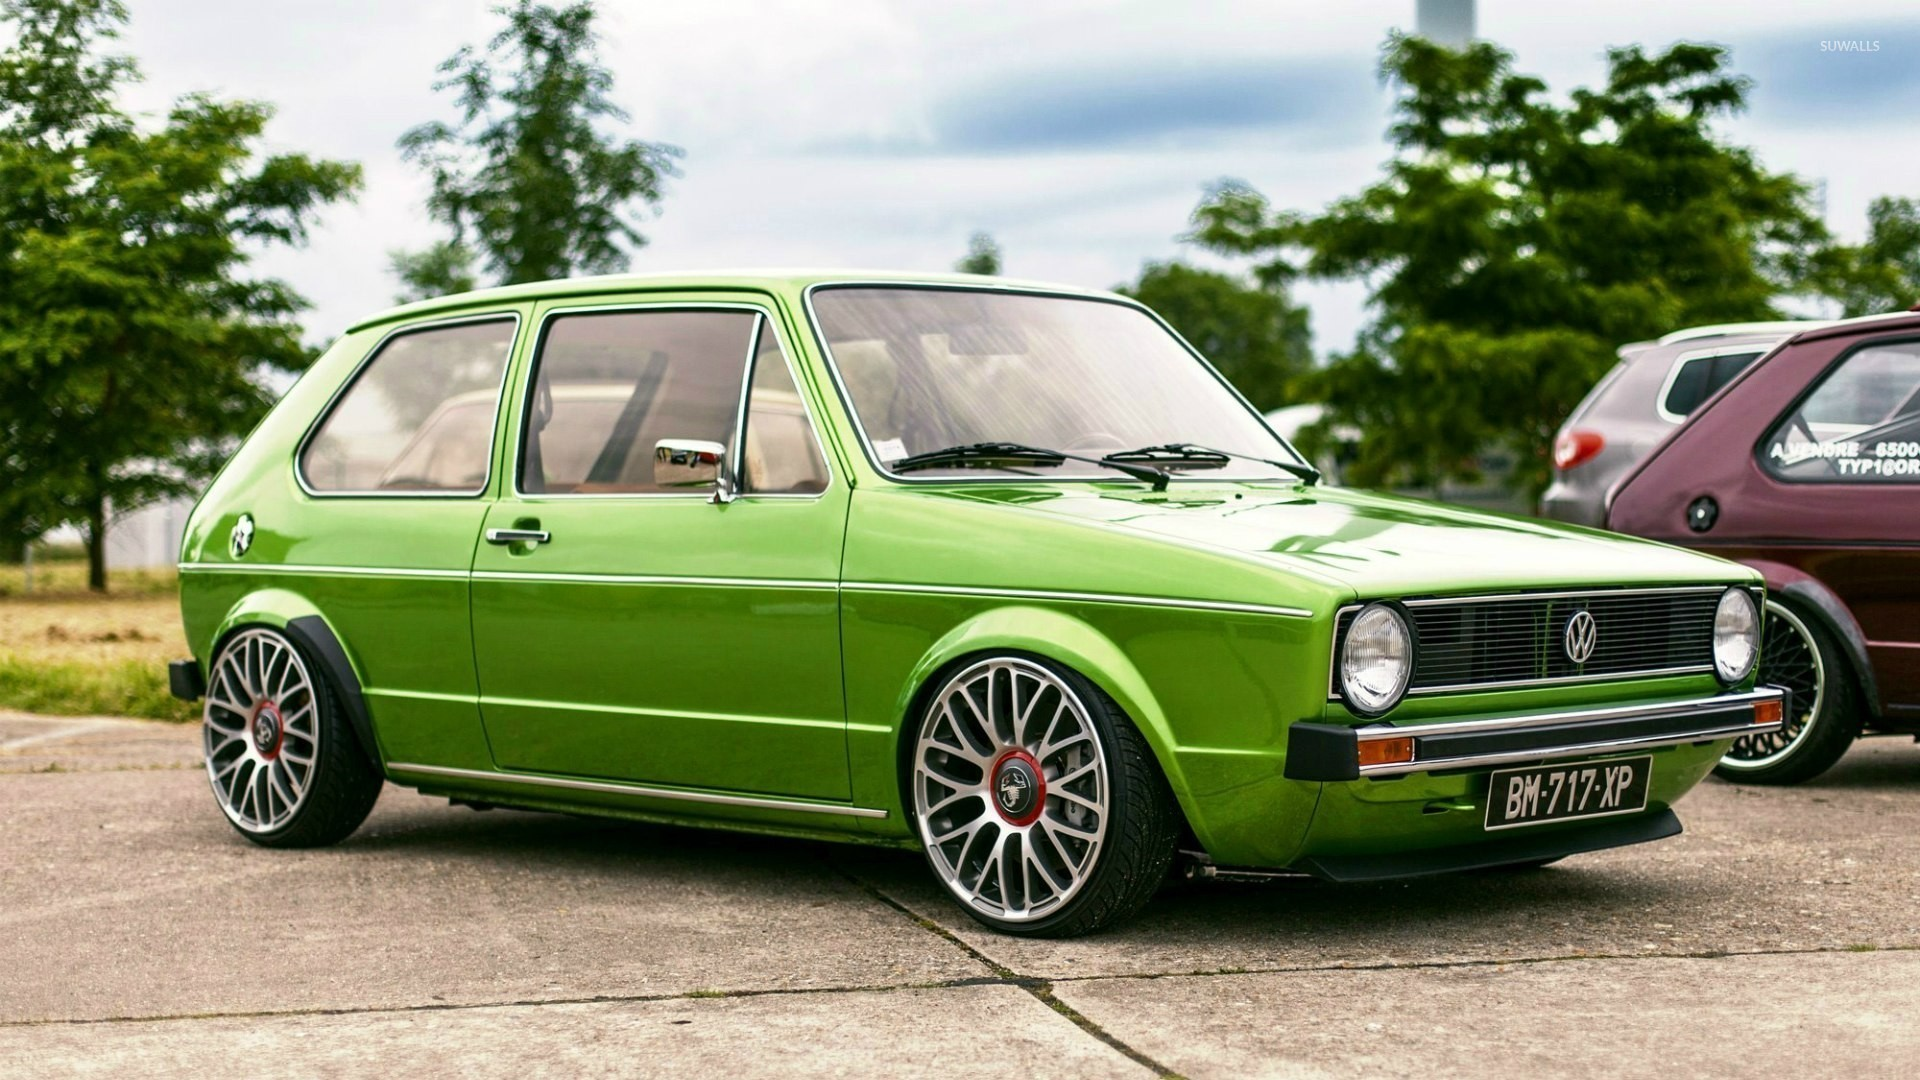 Green Volkswagen Golf Mk1 Side View Wallpaper